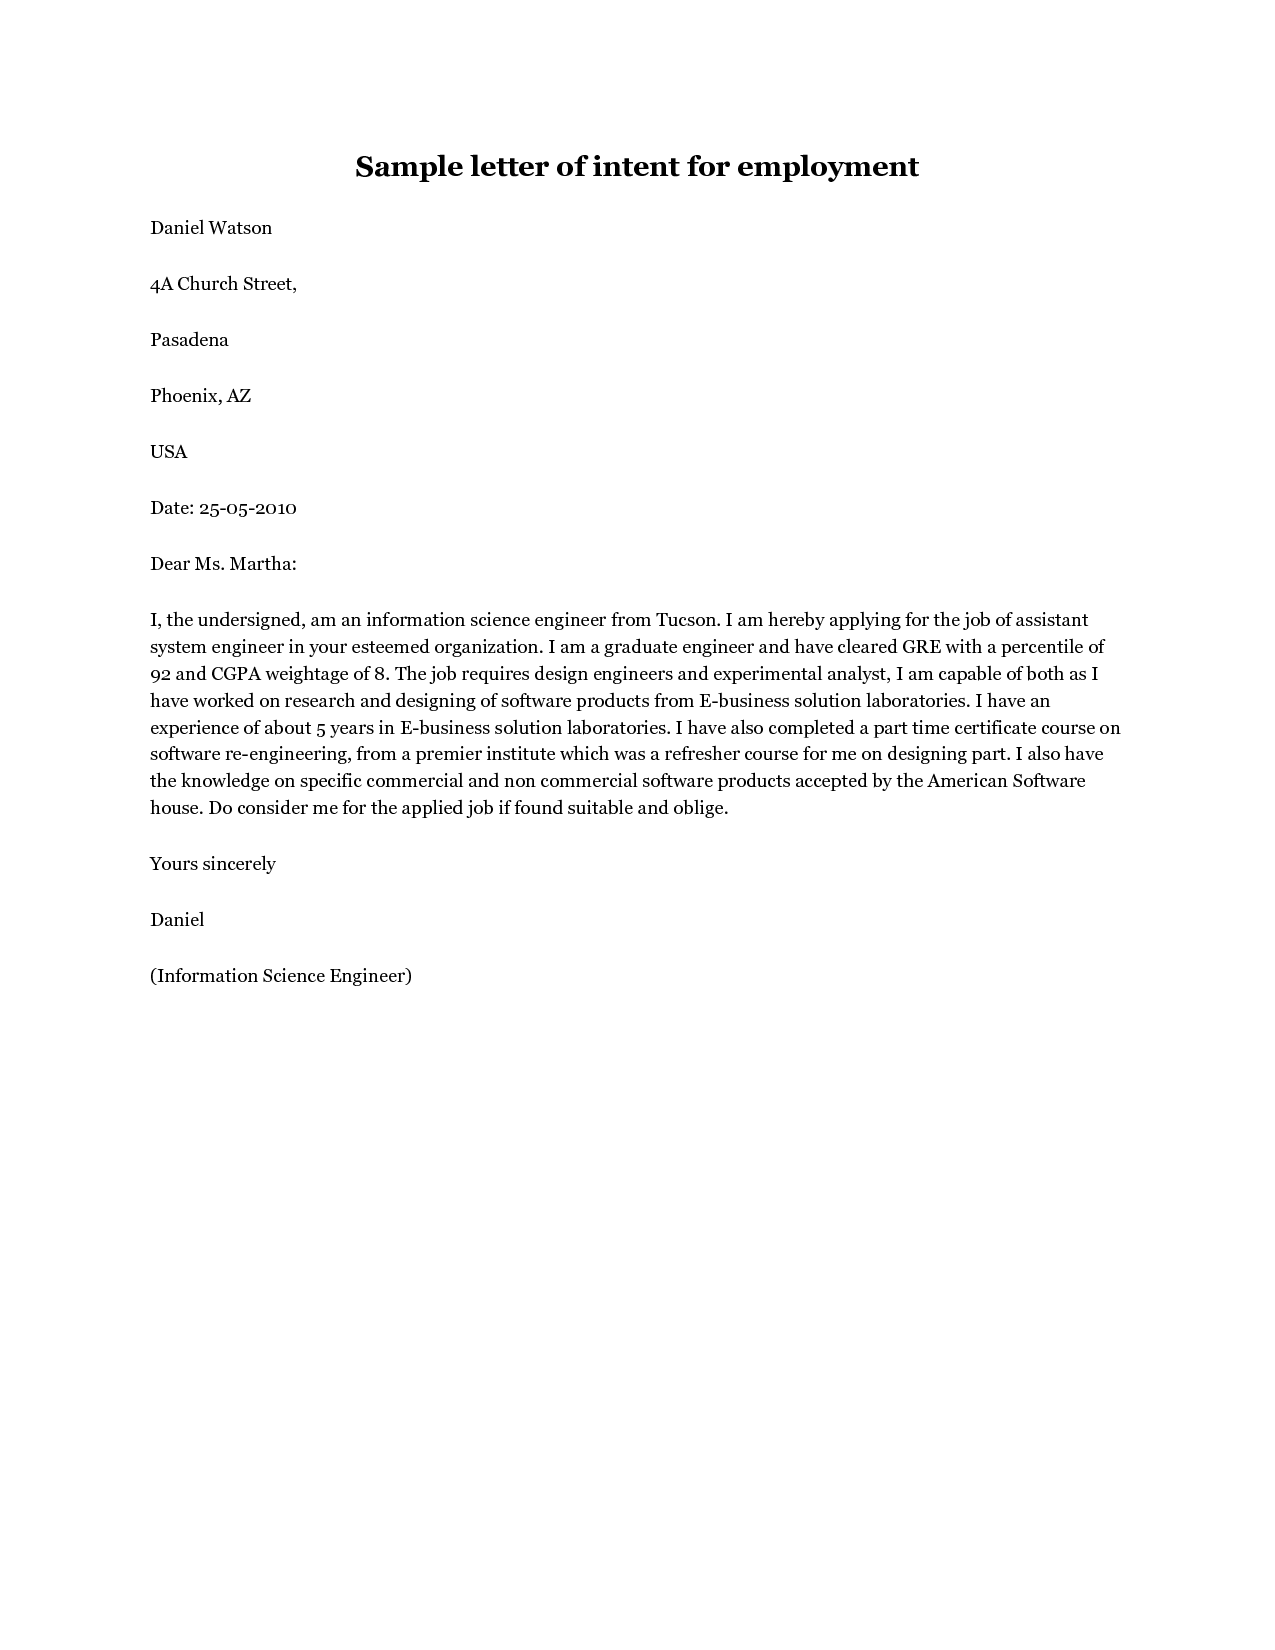 Sample Letter of Intent Job Application sample letter of intent ...